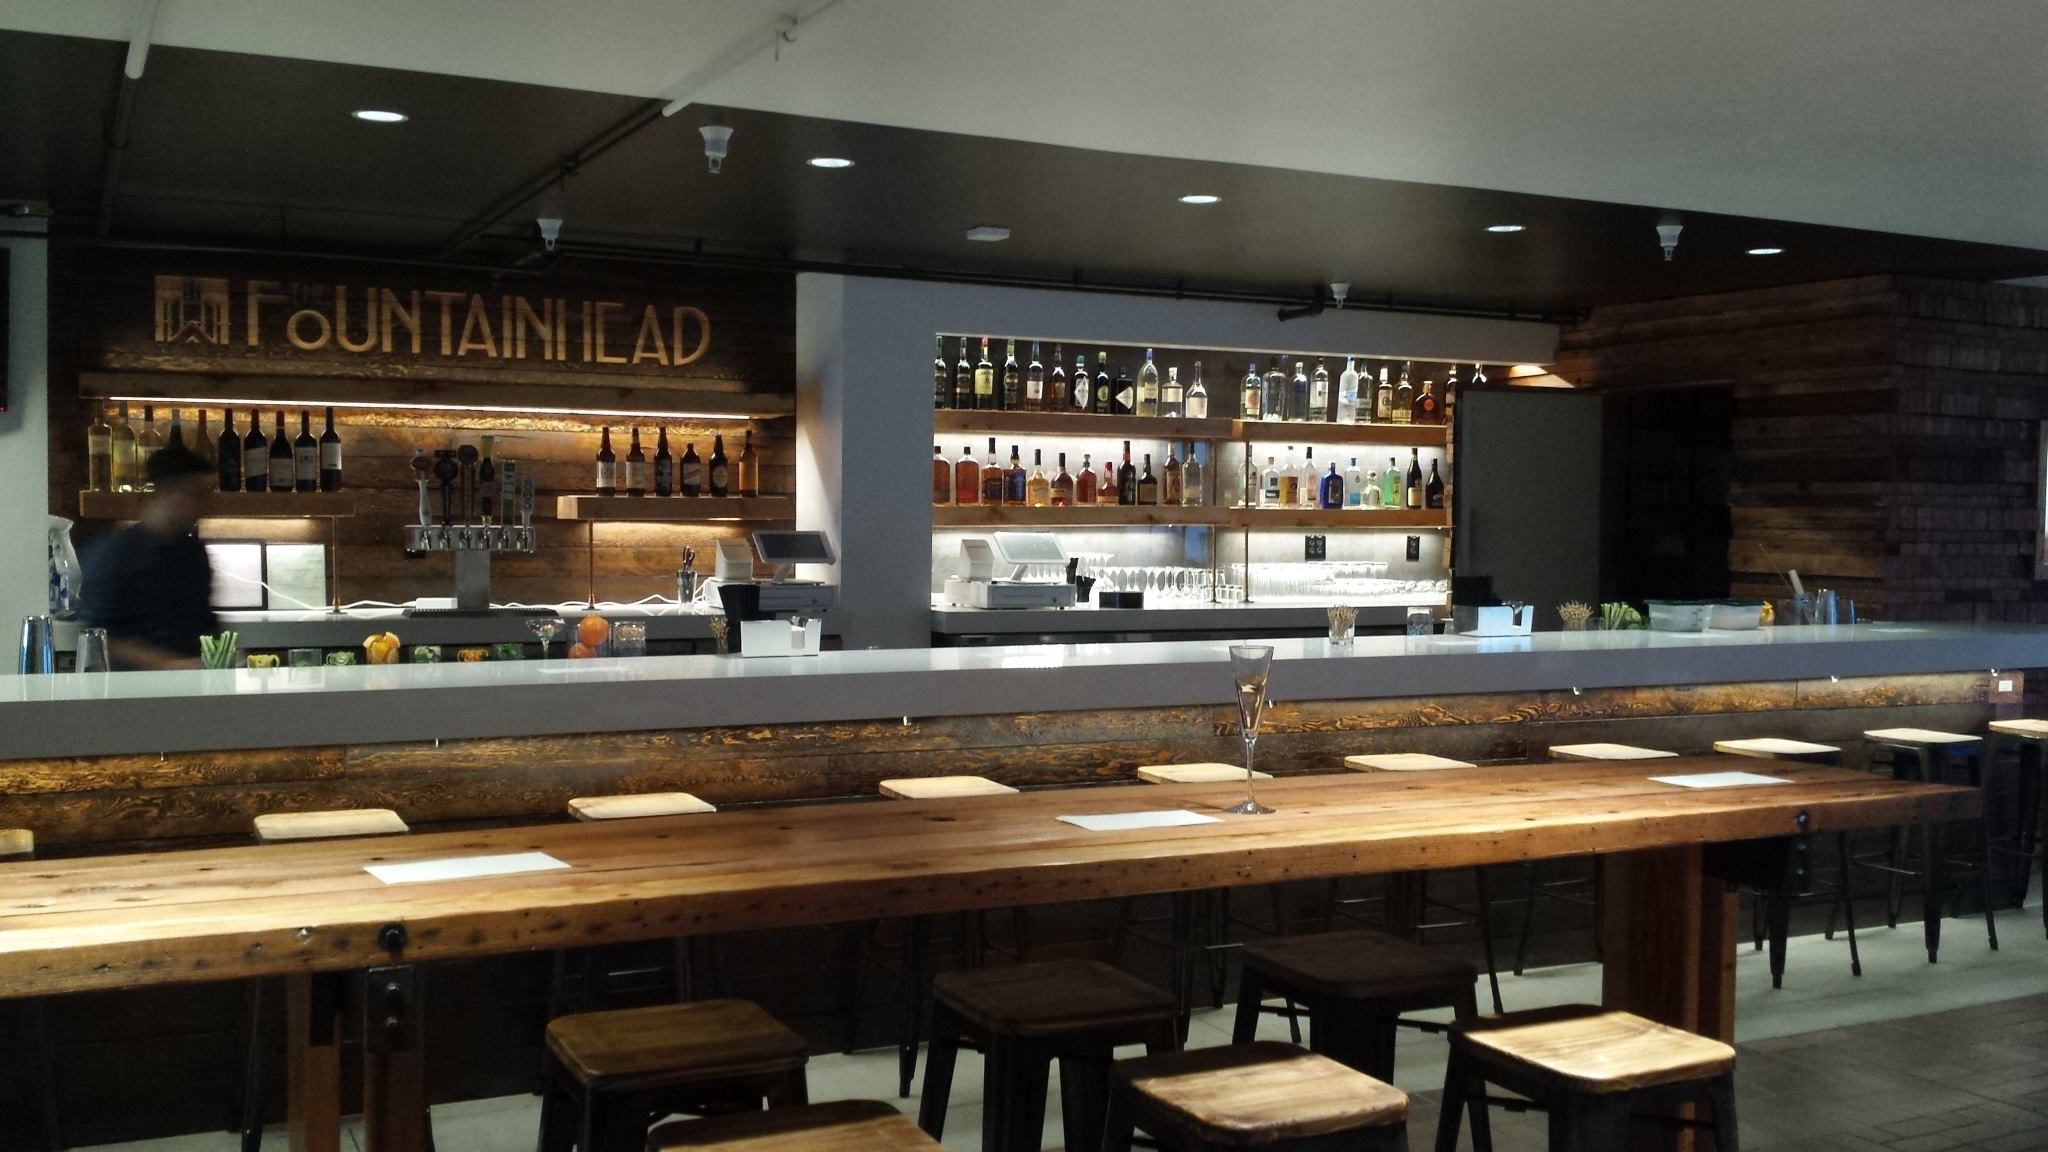 The Fountainhead Bar